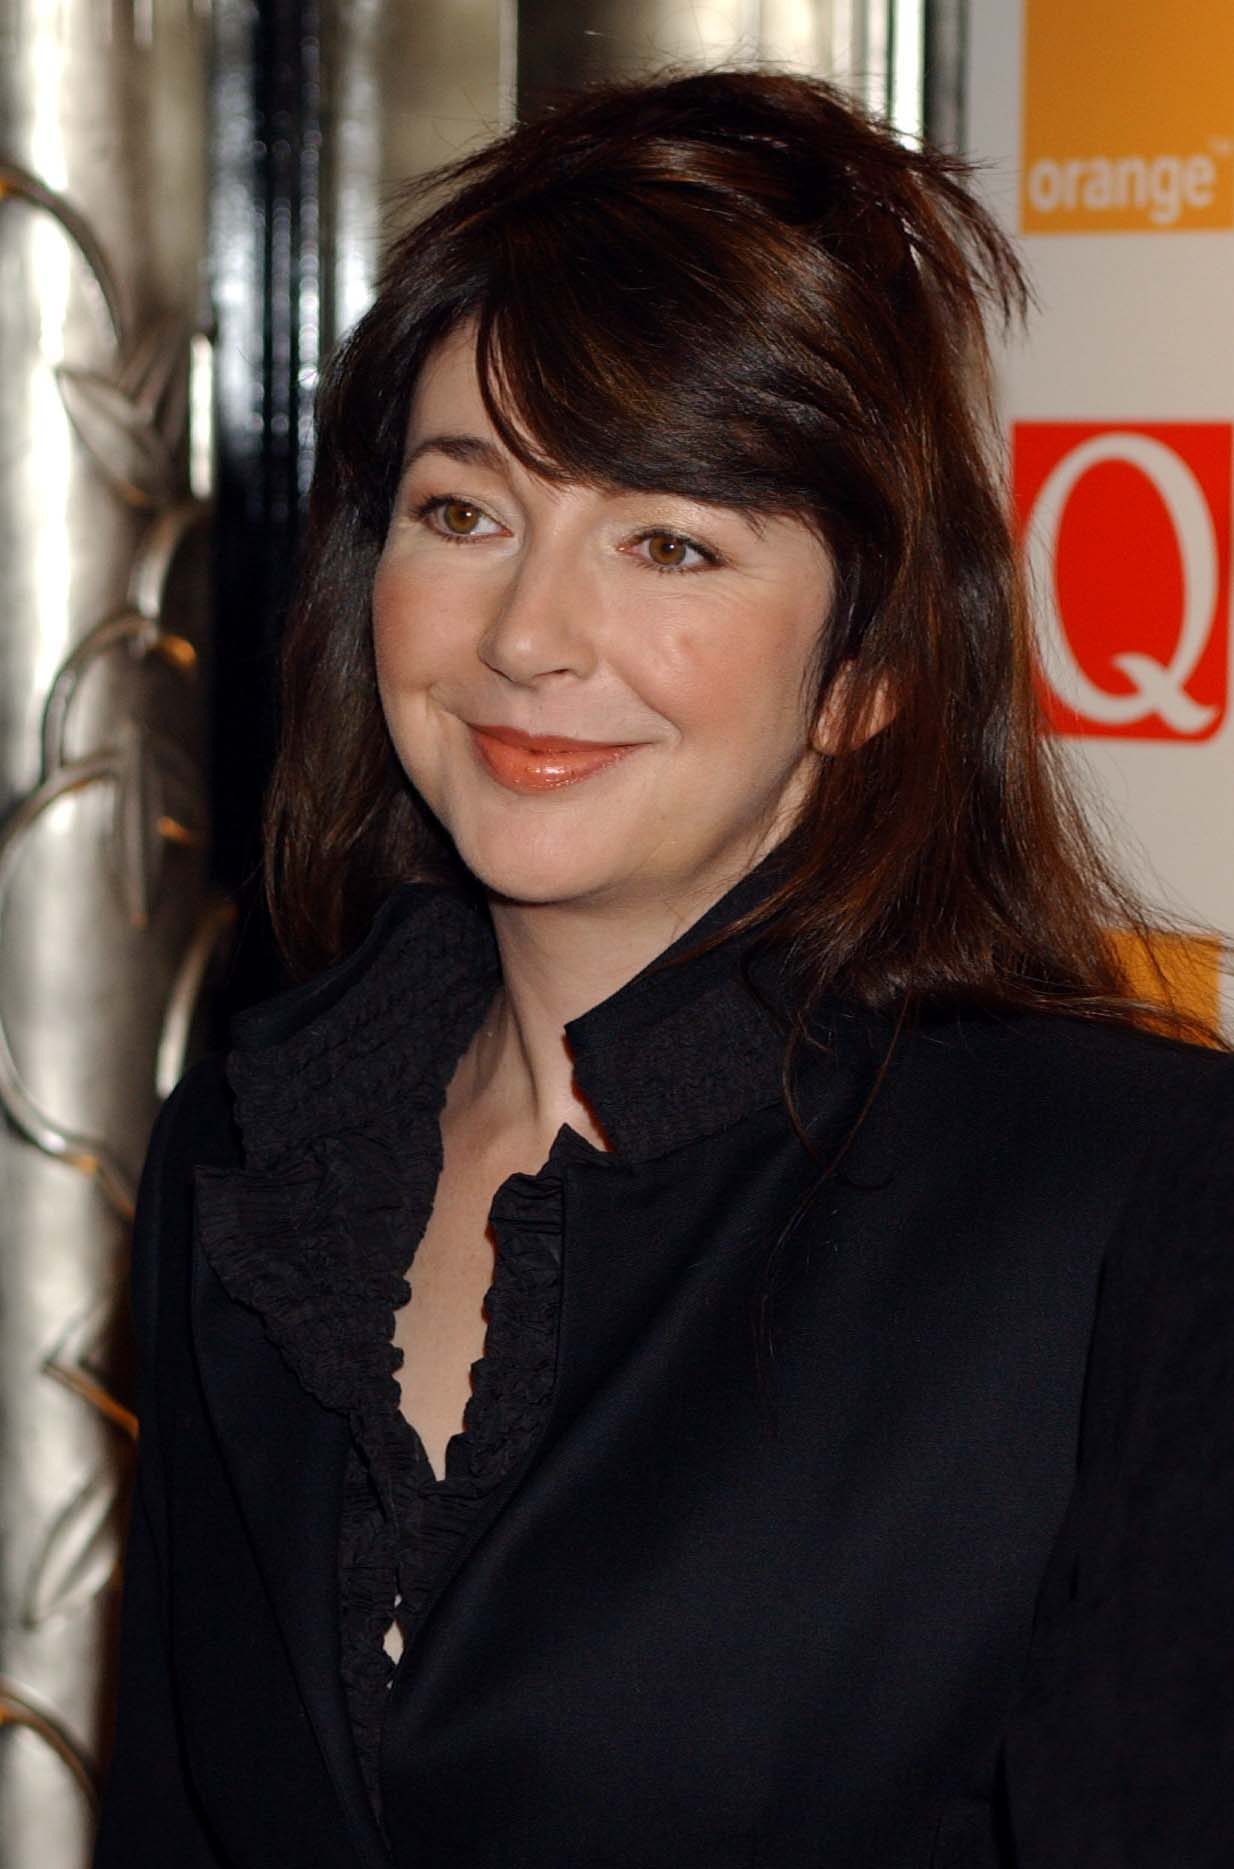 Singer Kate Bush arrives at the Park Lane Hotel, Mayfair London for the 2001 'Q' Magazine annual music awards | Photo: Getty Images